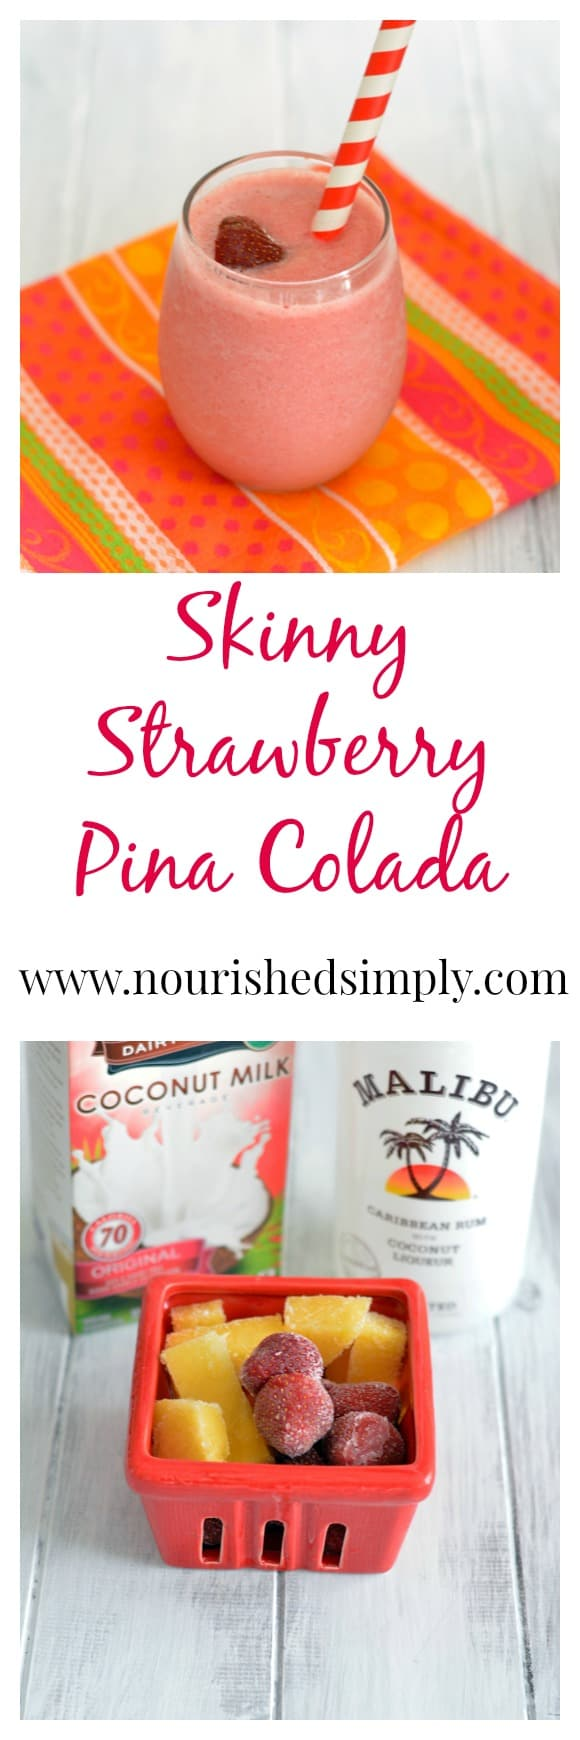 Skinny Pina Colada - rich in flavor, but lower in calories!